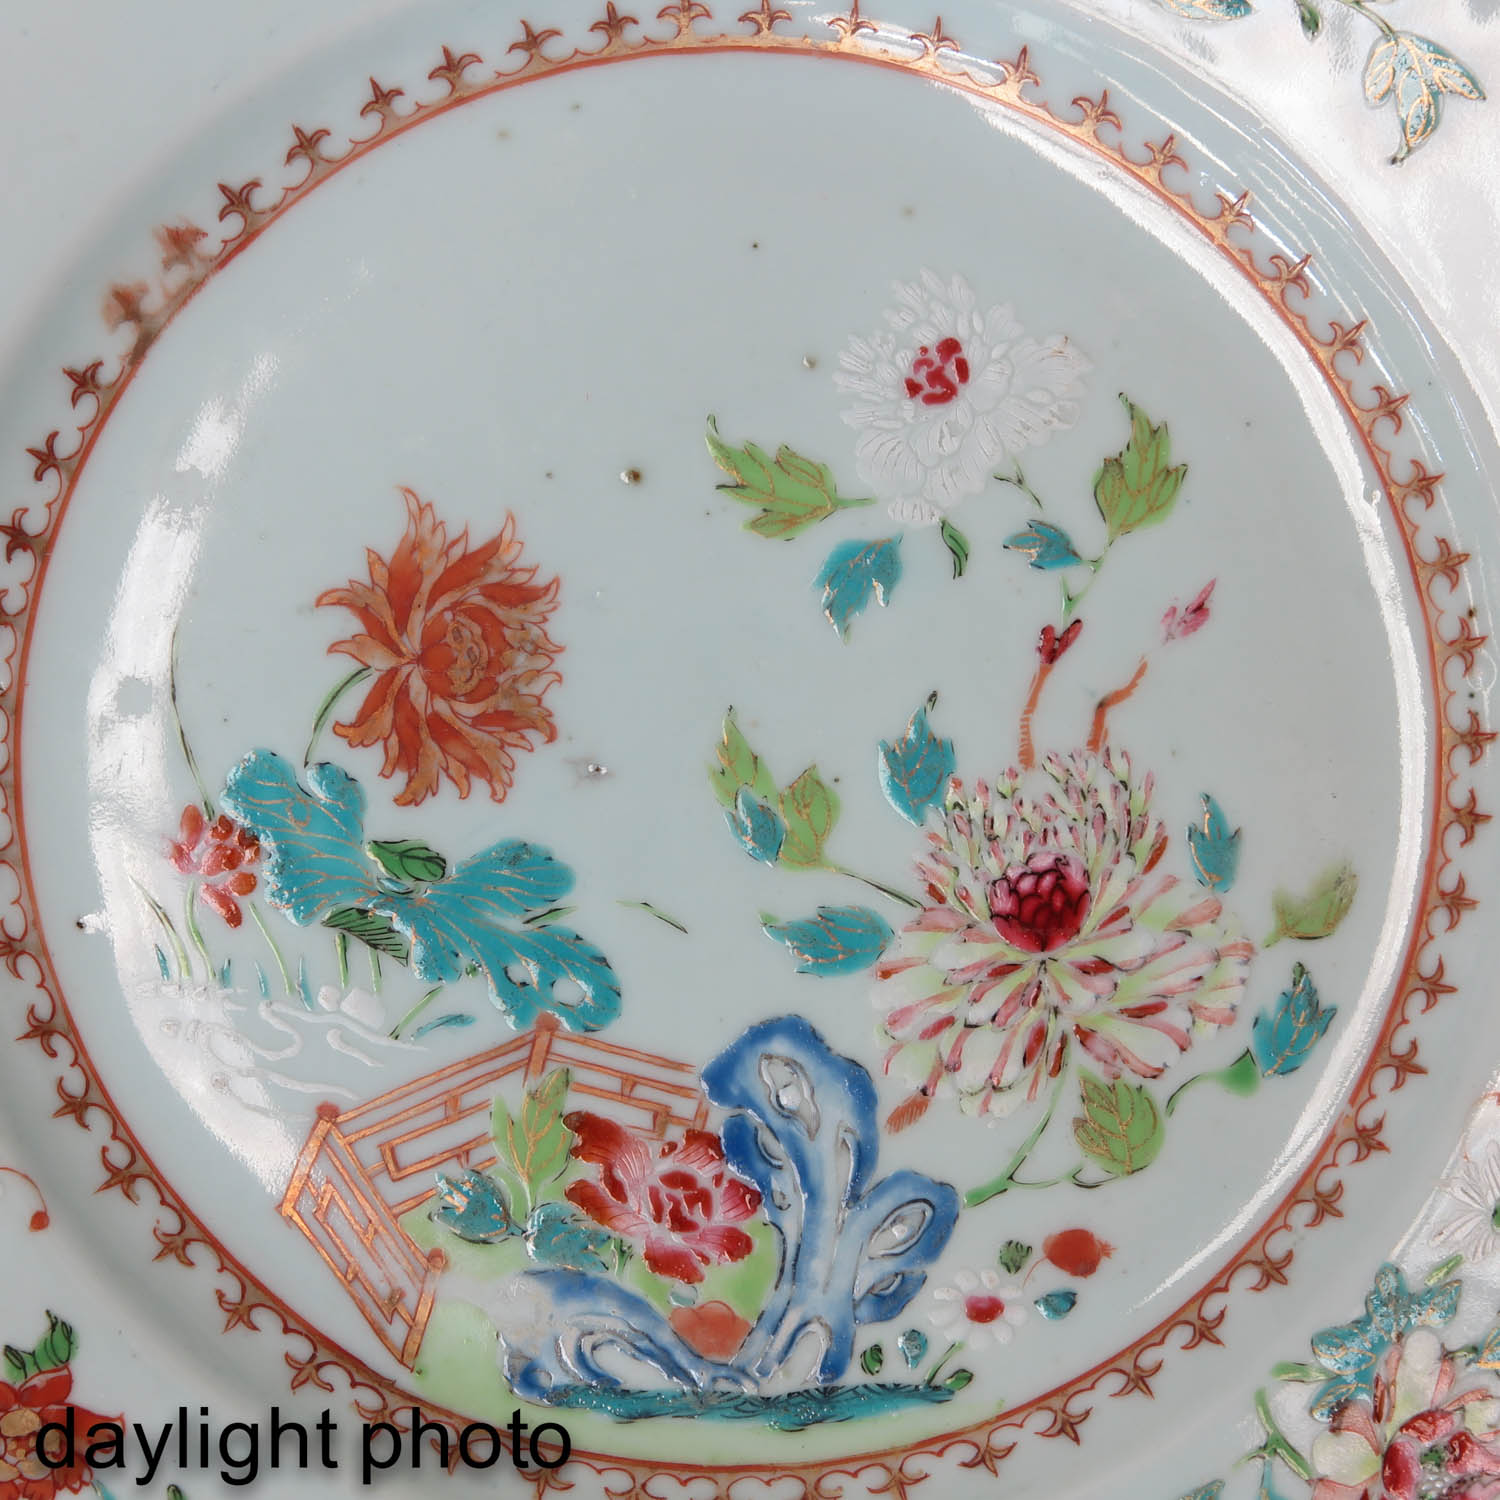 A Collection of 4 Famille Rose Plates - Image 10 of 10